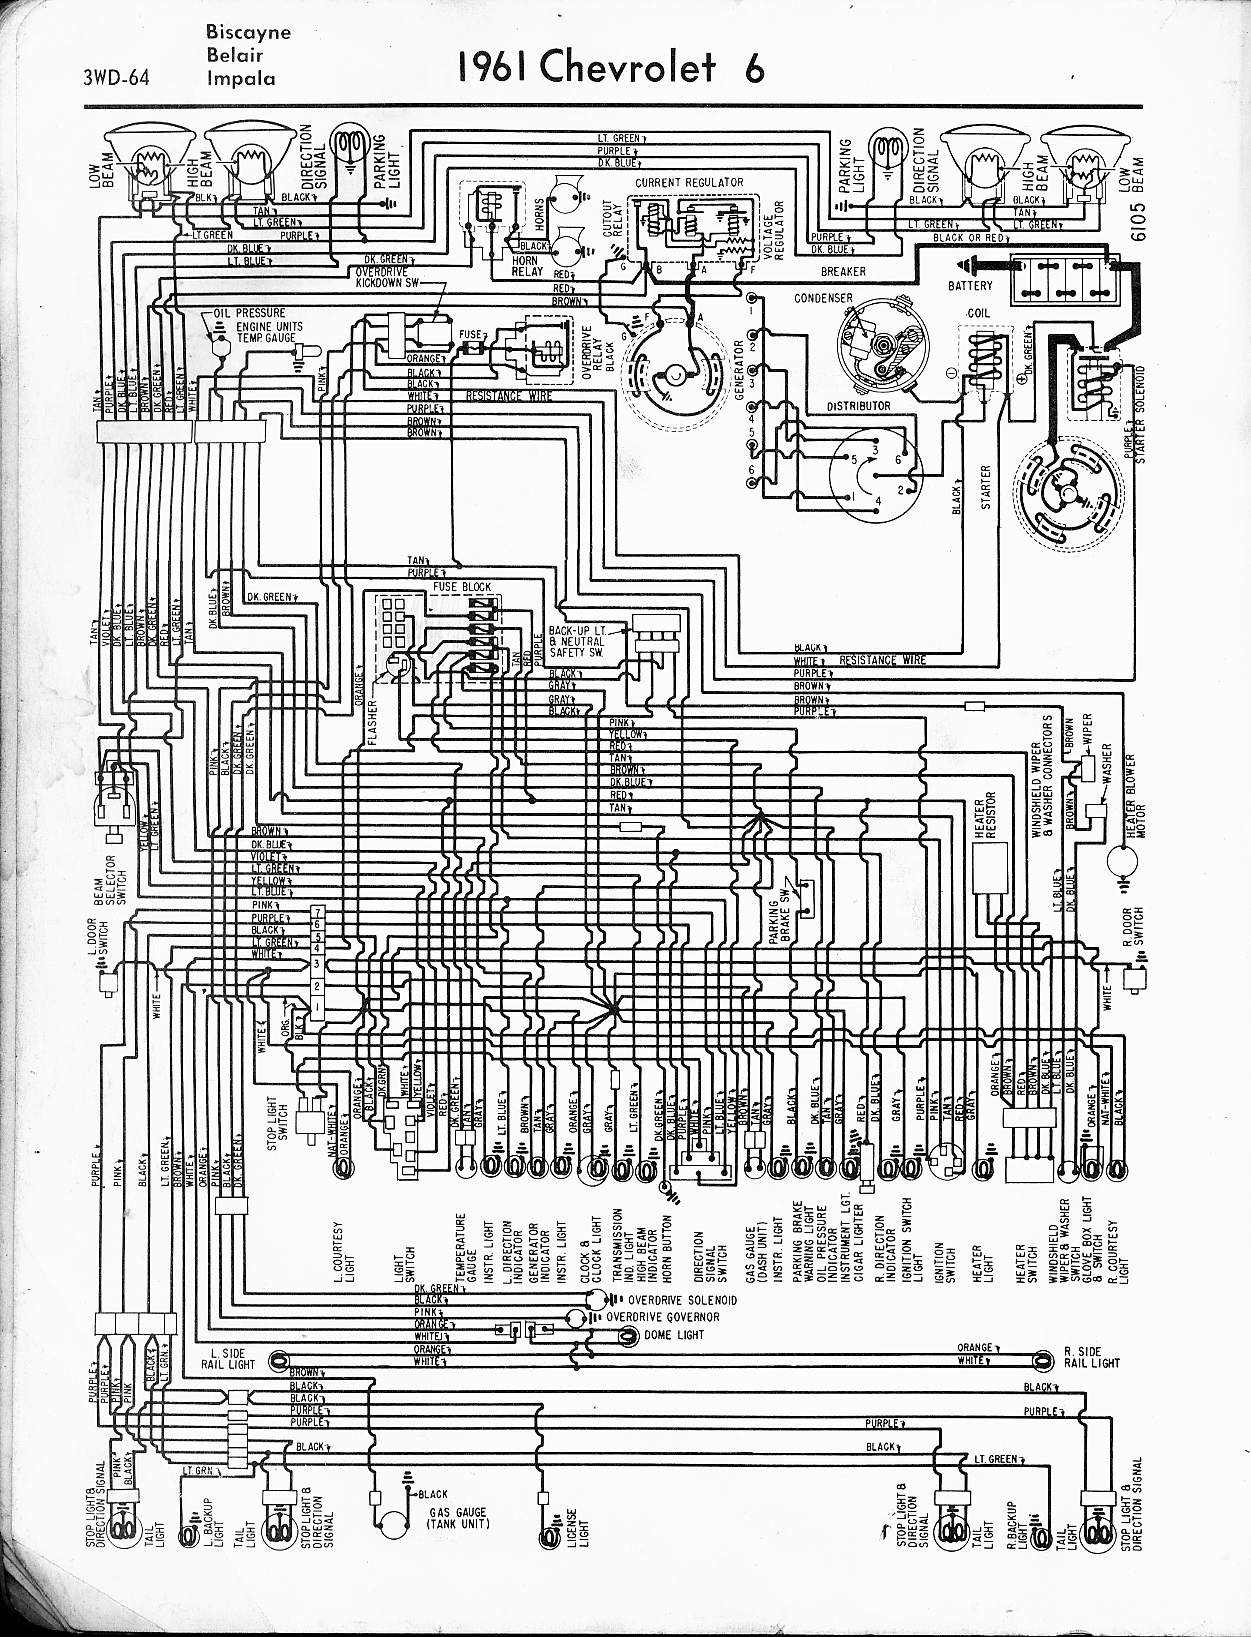 1961 Corvette Wiring Schematic Wiring Diagrams Ove